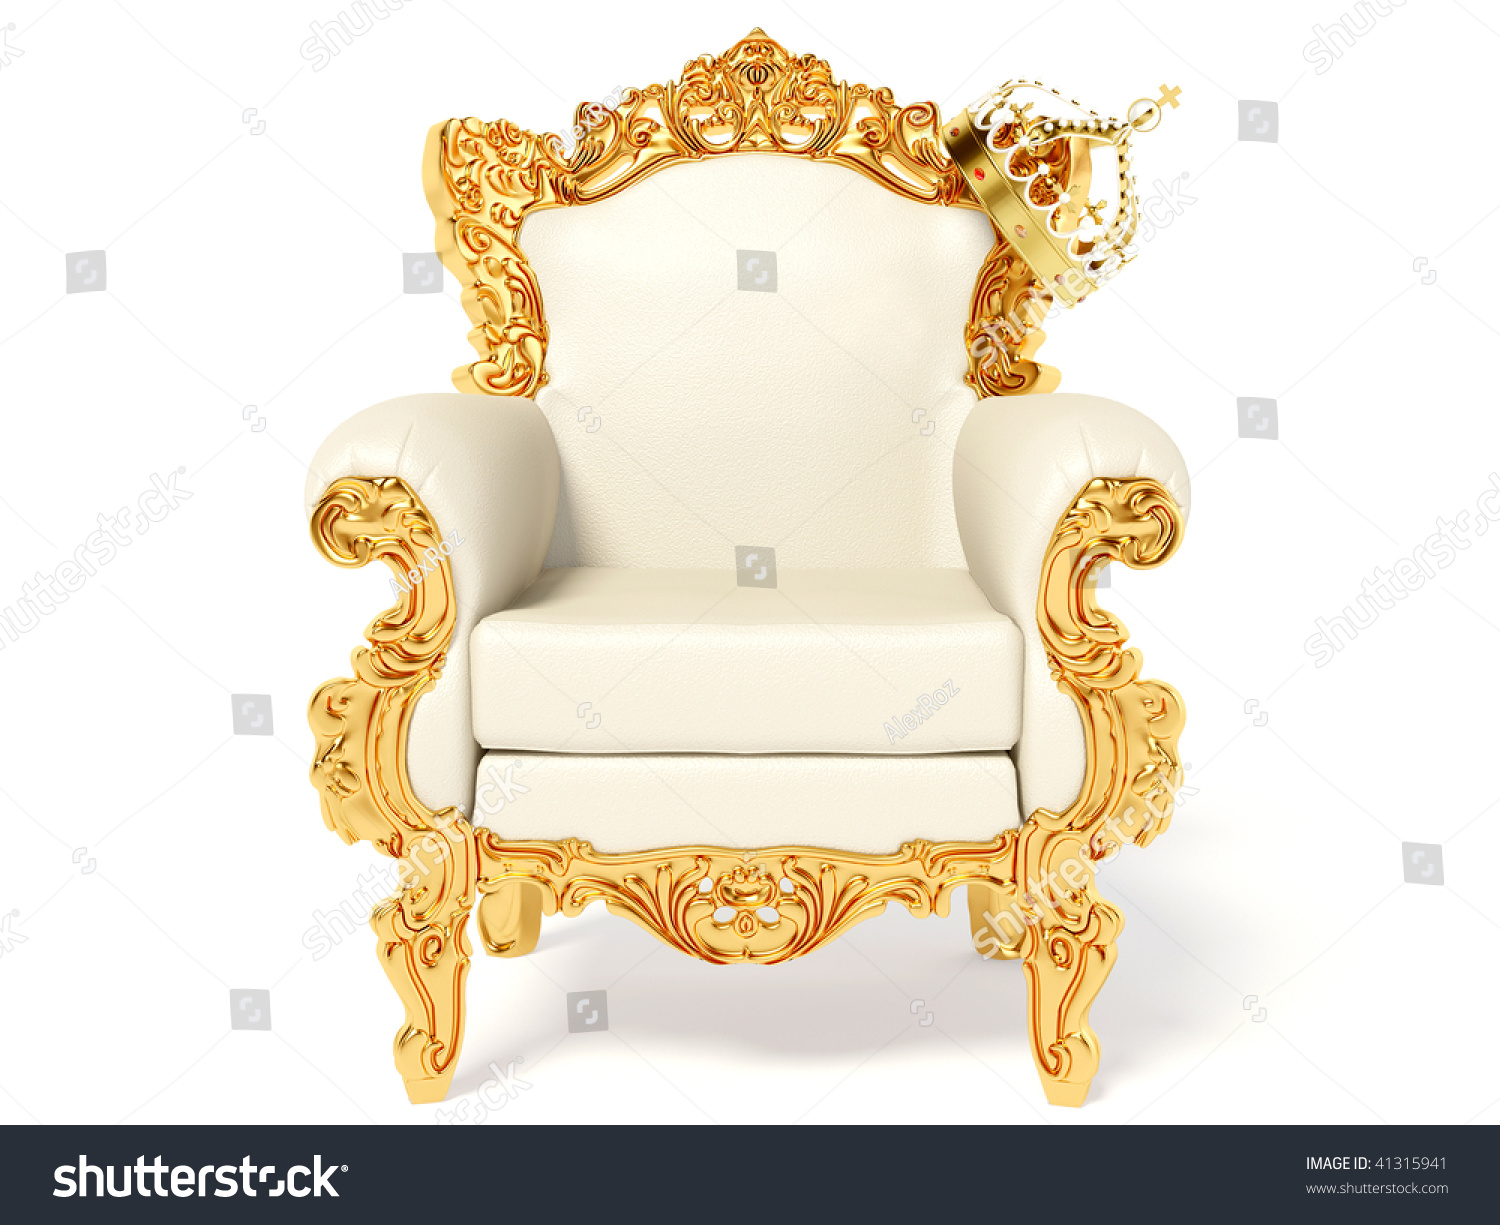 Gold Throne Crown On White Stock Illustration 41315941